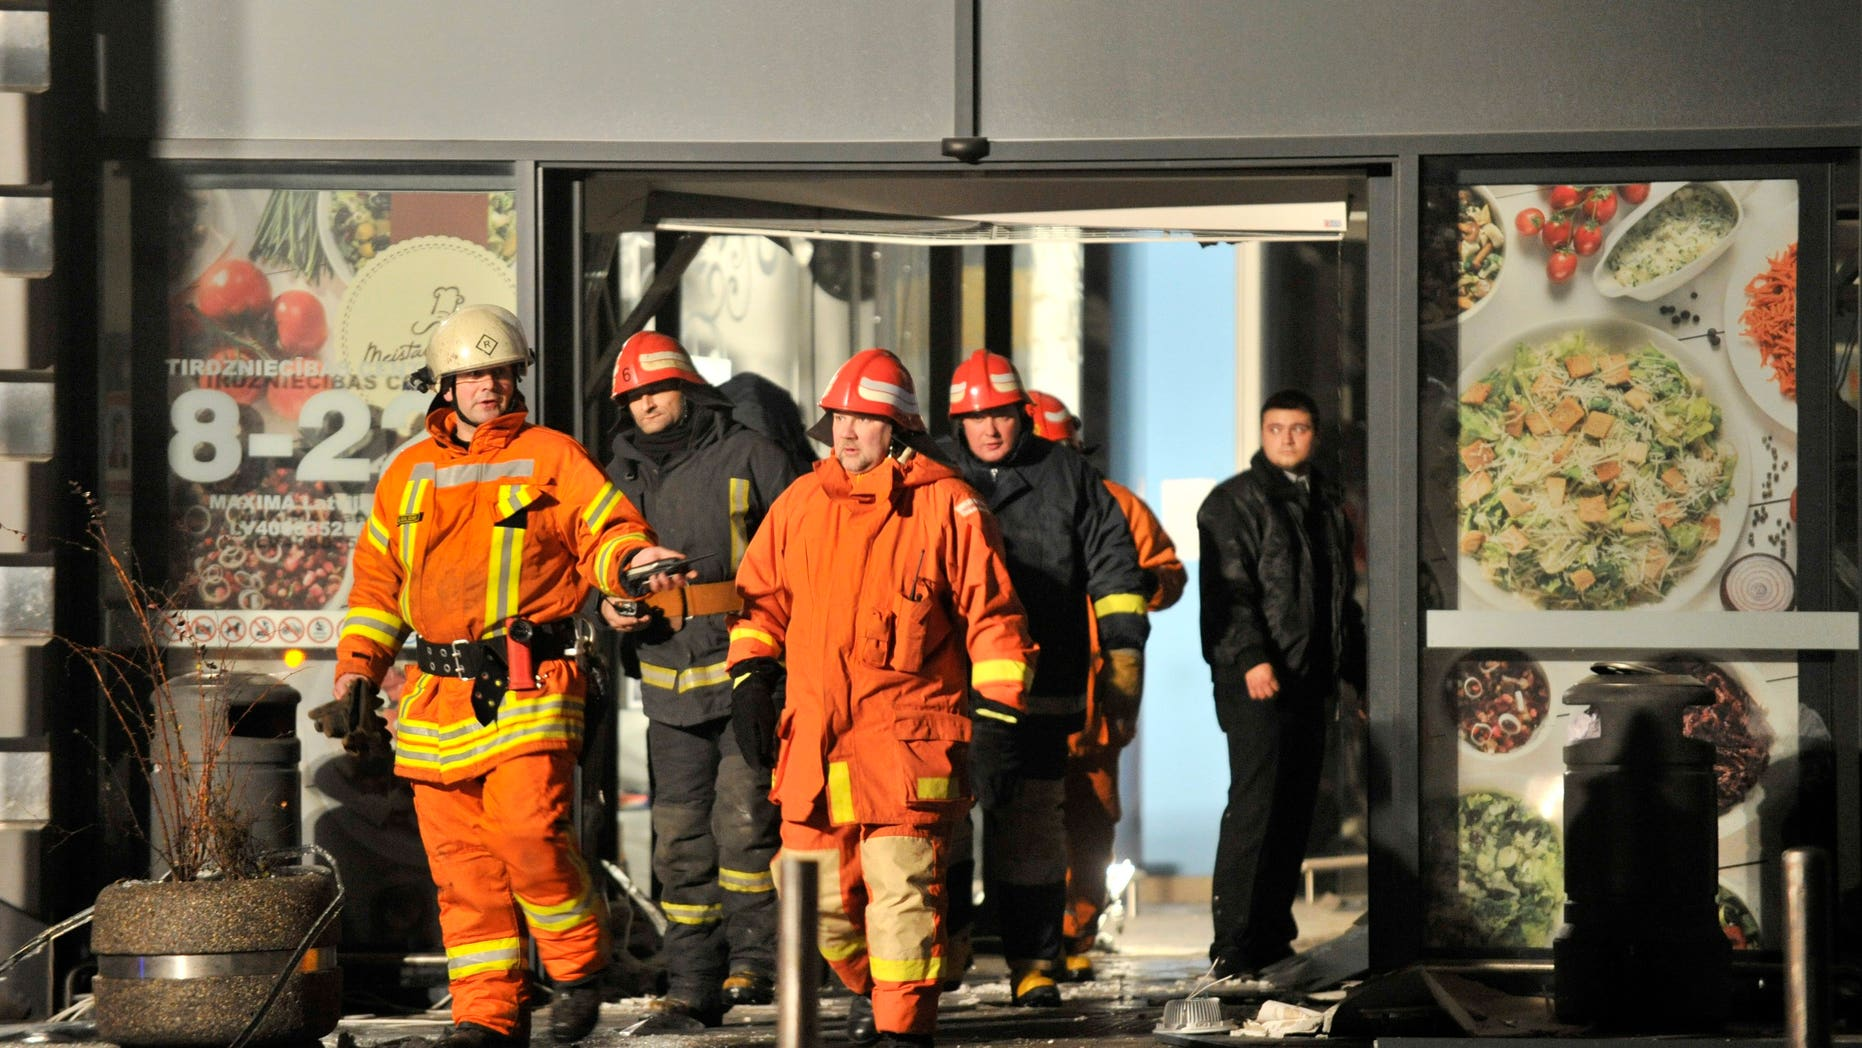 Rescuers work at the Maxima grocery store after its roof collapsed in Riga, Latvia, Thursday, Nov. 21, 2013. Latvian rescue officials say a roof at a large grocery store in the country's capital collapsed and killed several people  and injuring more than a dozen people.  (AP Photo/Roman Koksarov)